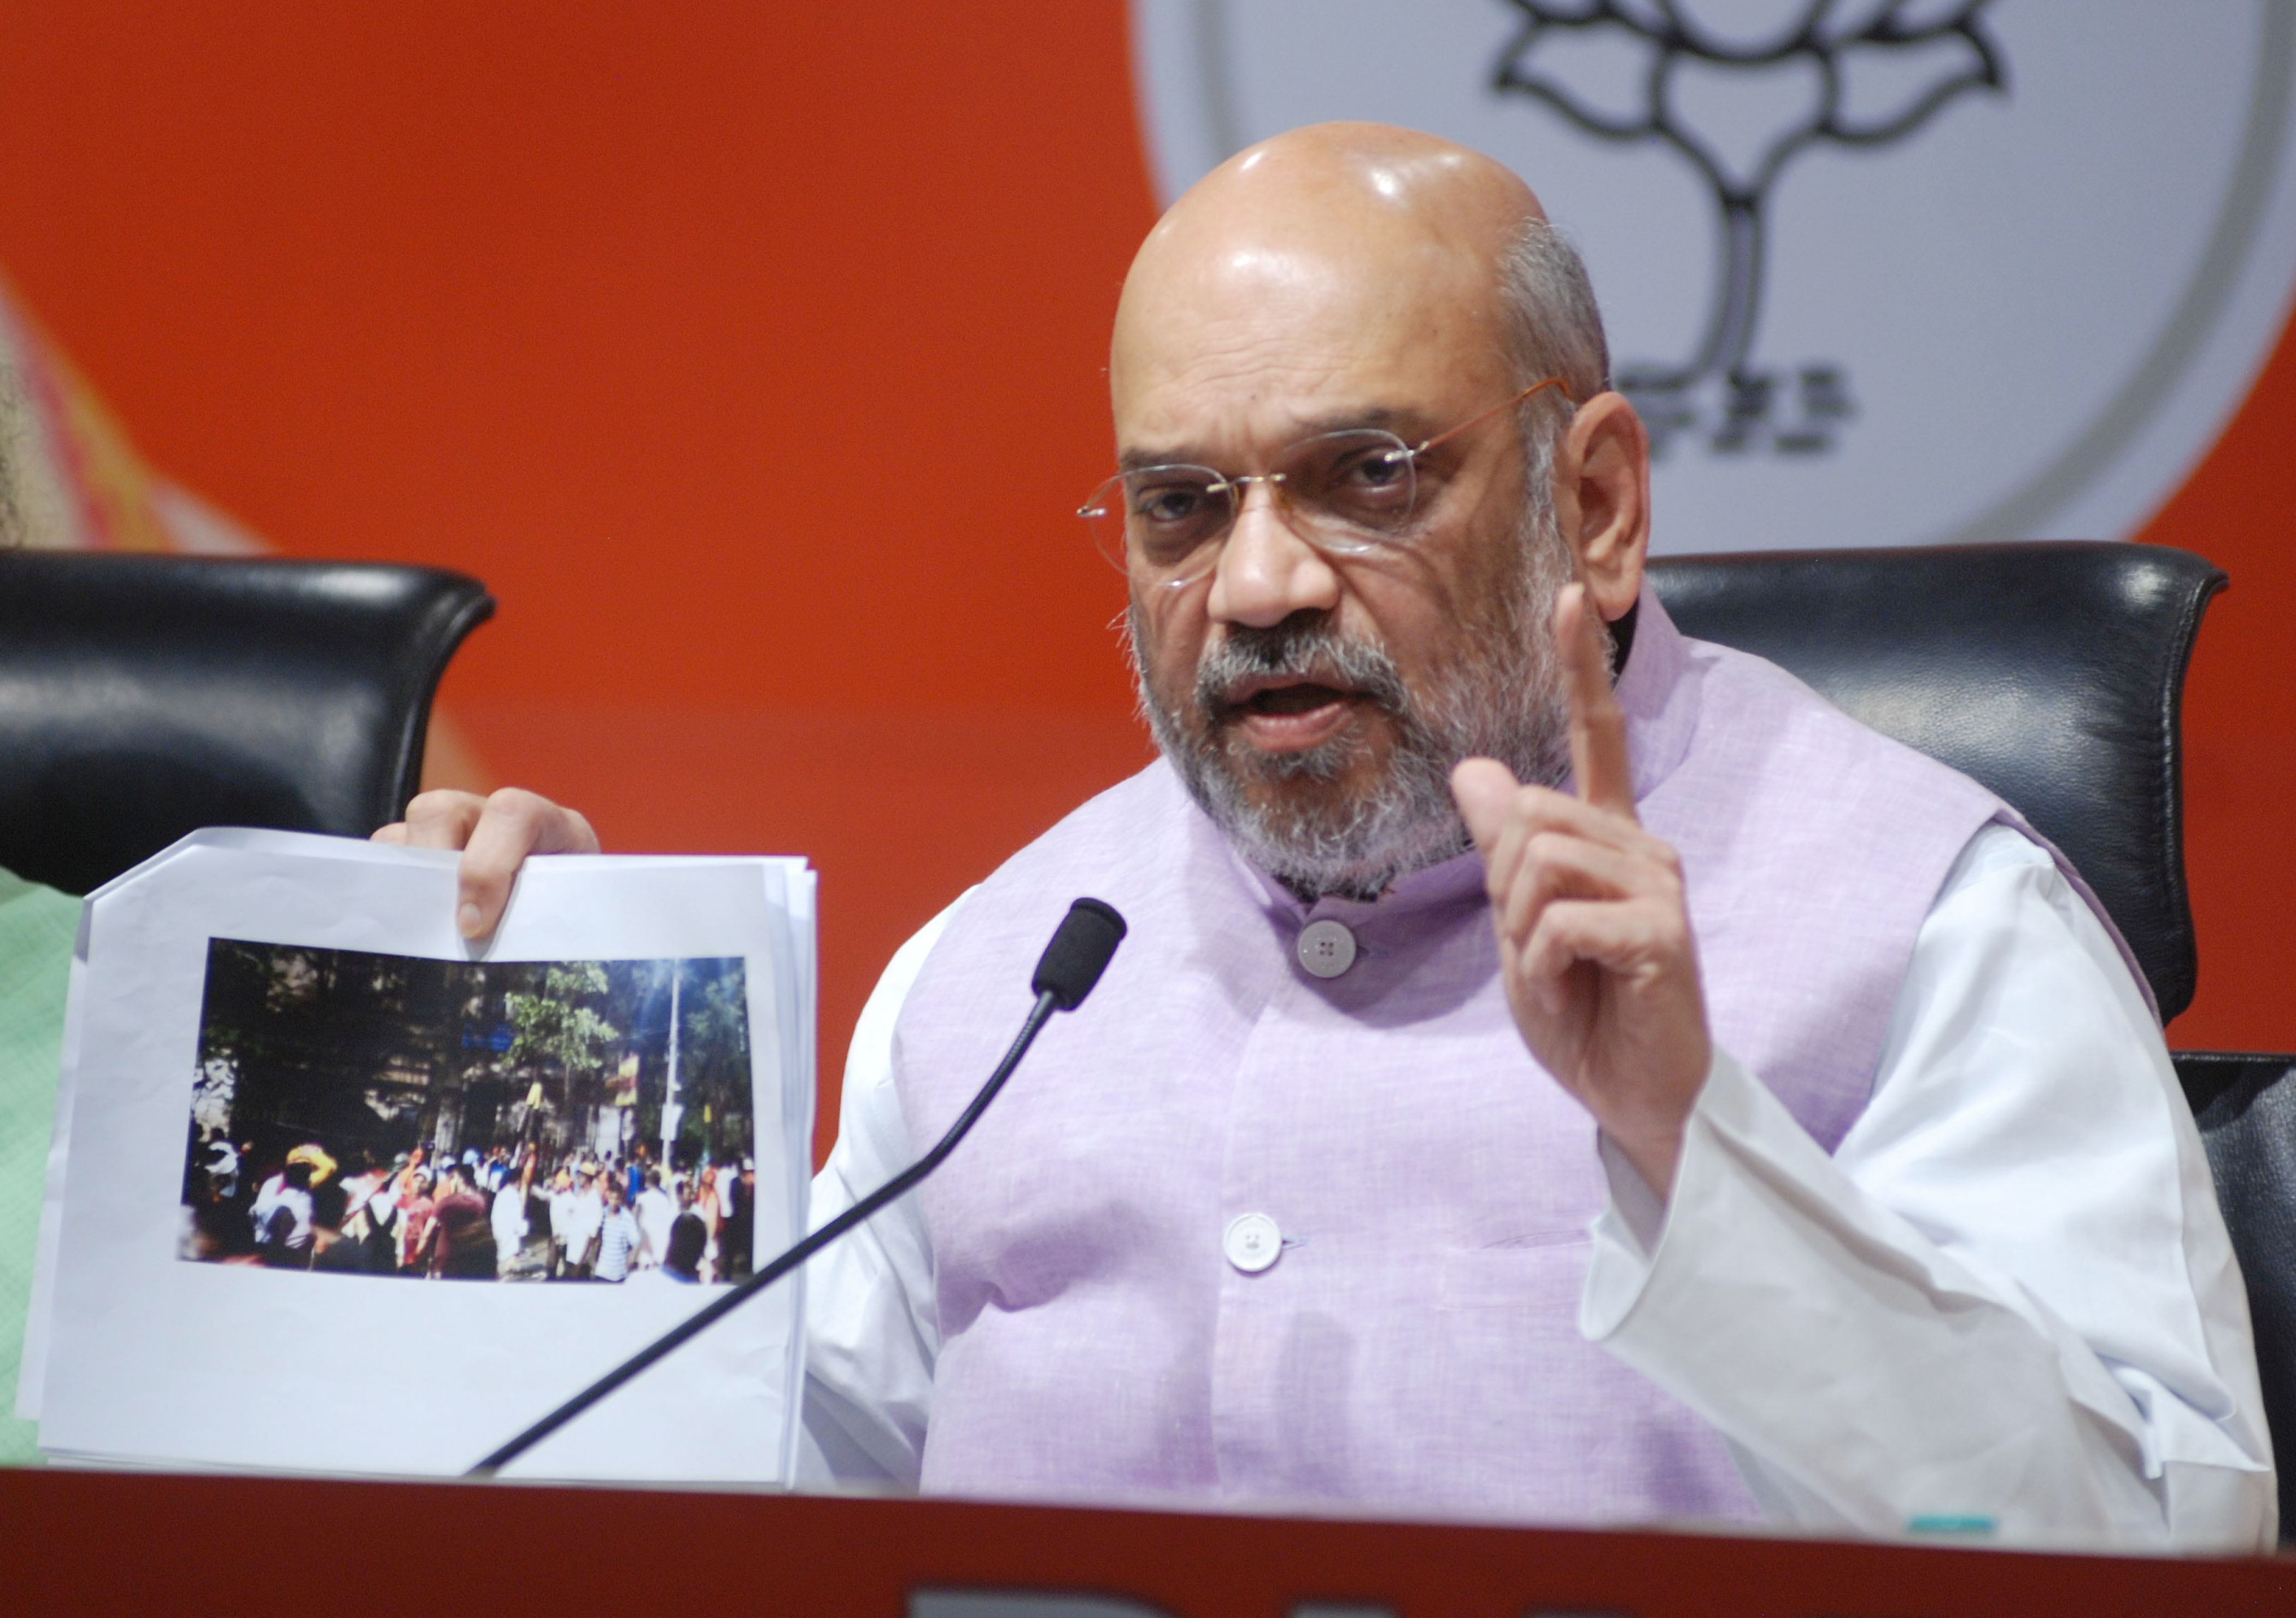 BJP National President Amit Shah addressing a press conference on violence during his national election campaign in West Bengal on Tuesday, in New Delhi on Wednesday. (UNI)